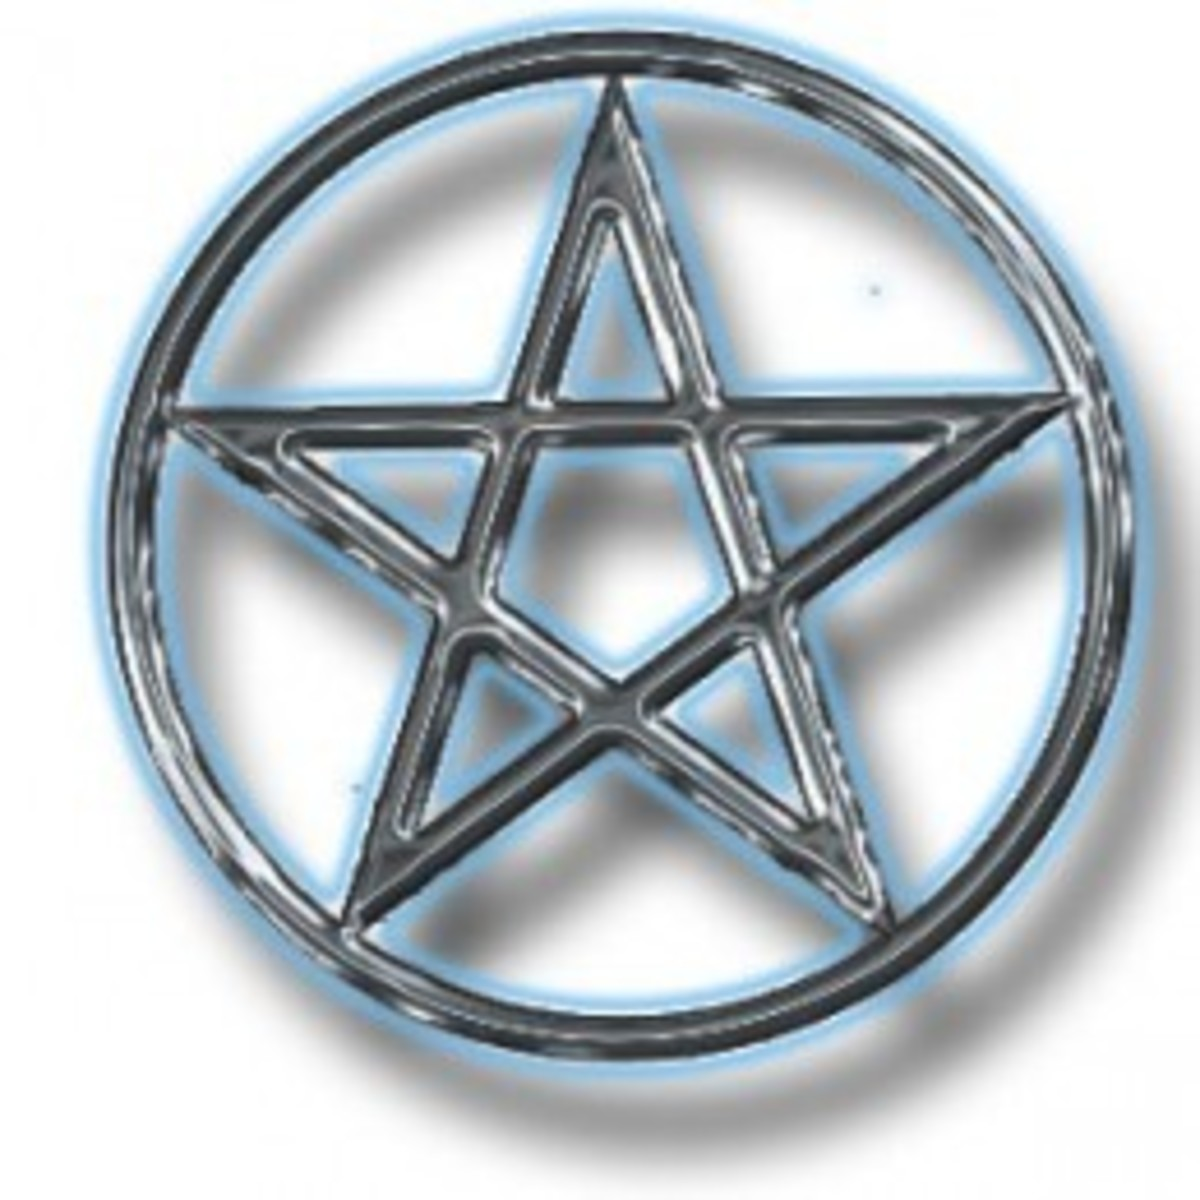 Ethics in Wicca: The Threefold Law | HubPages